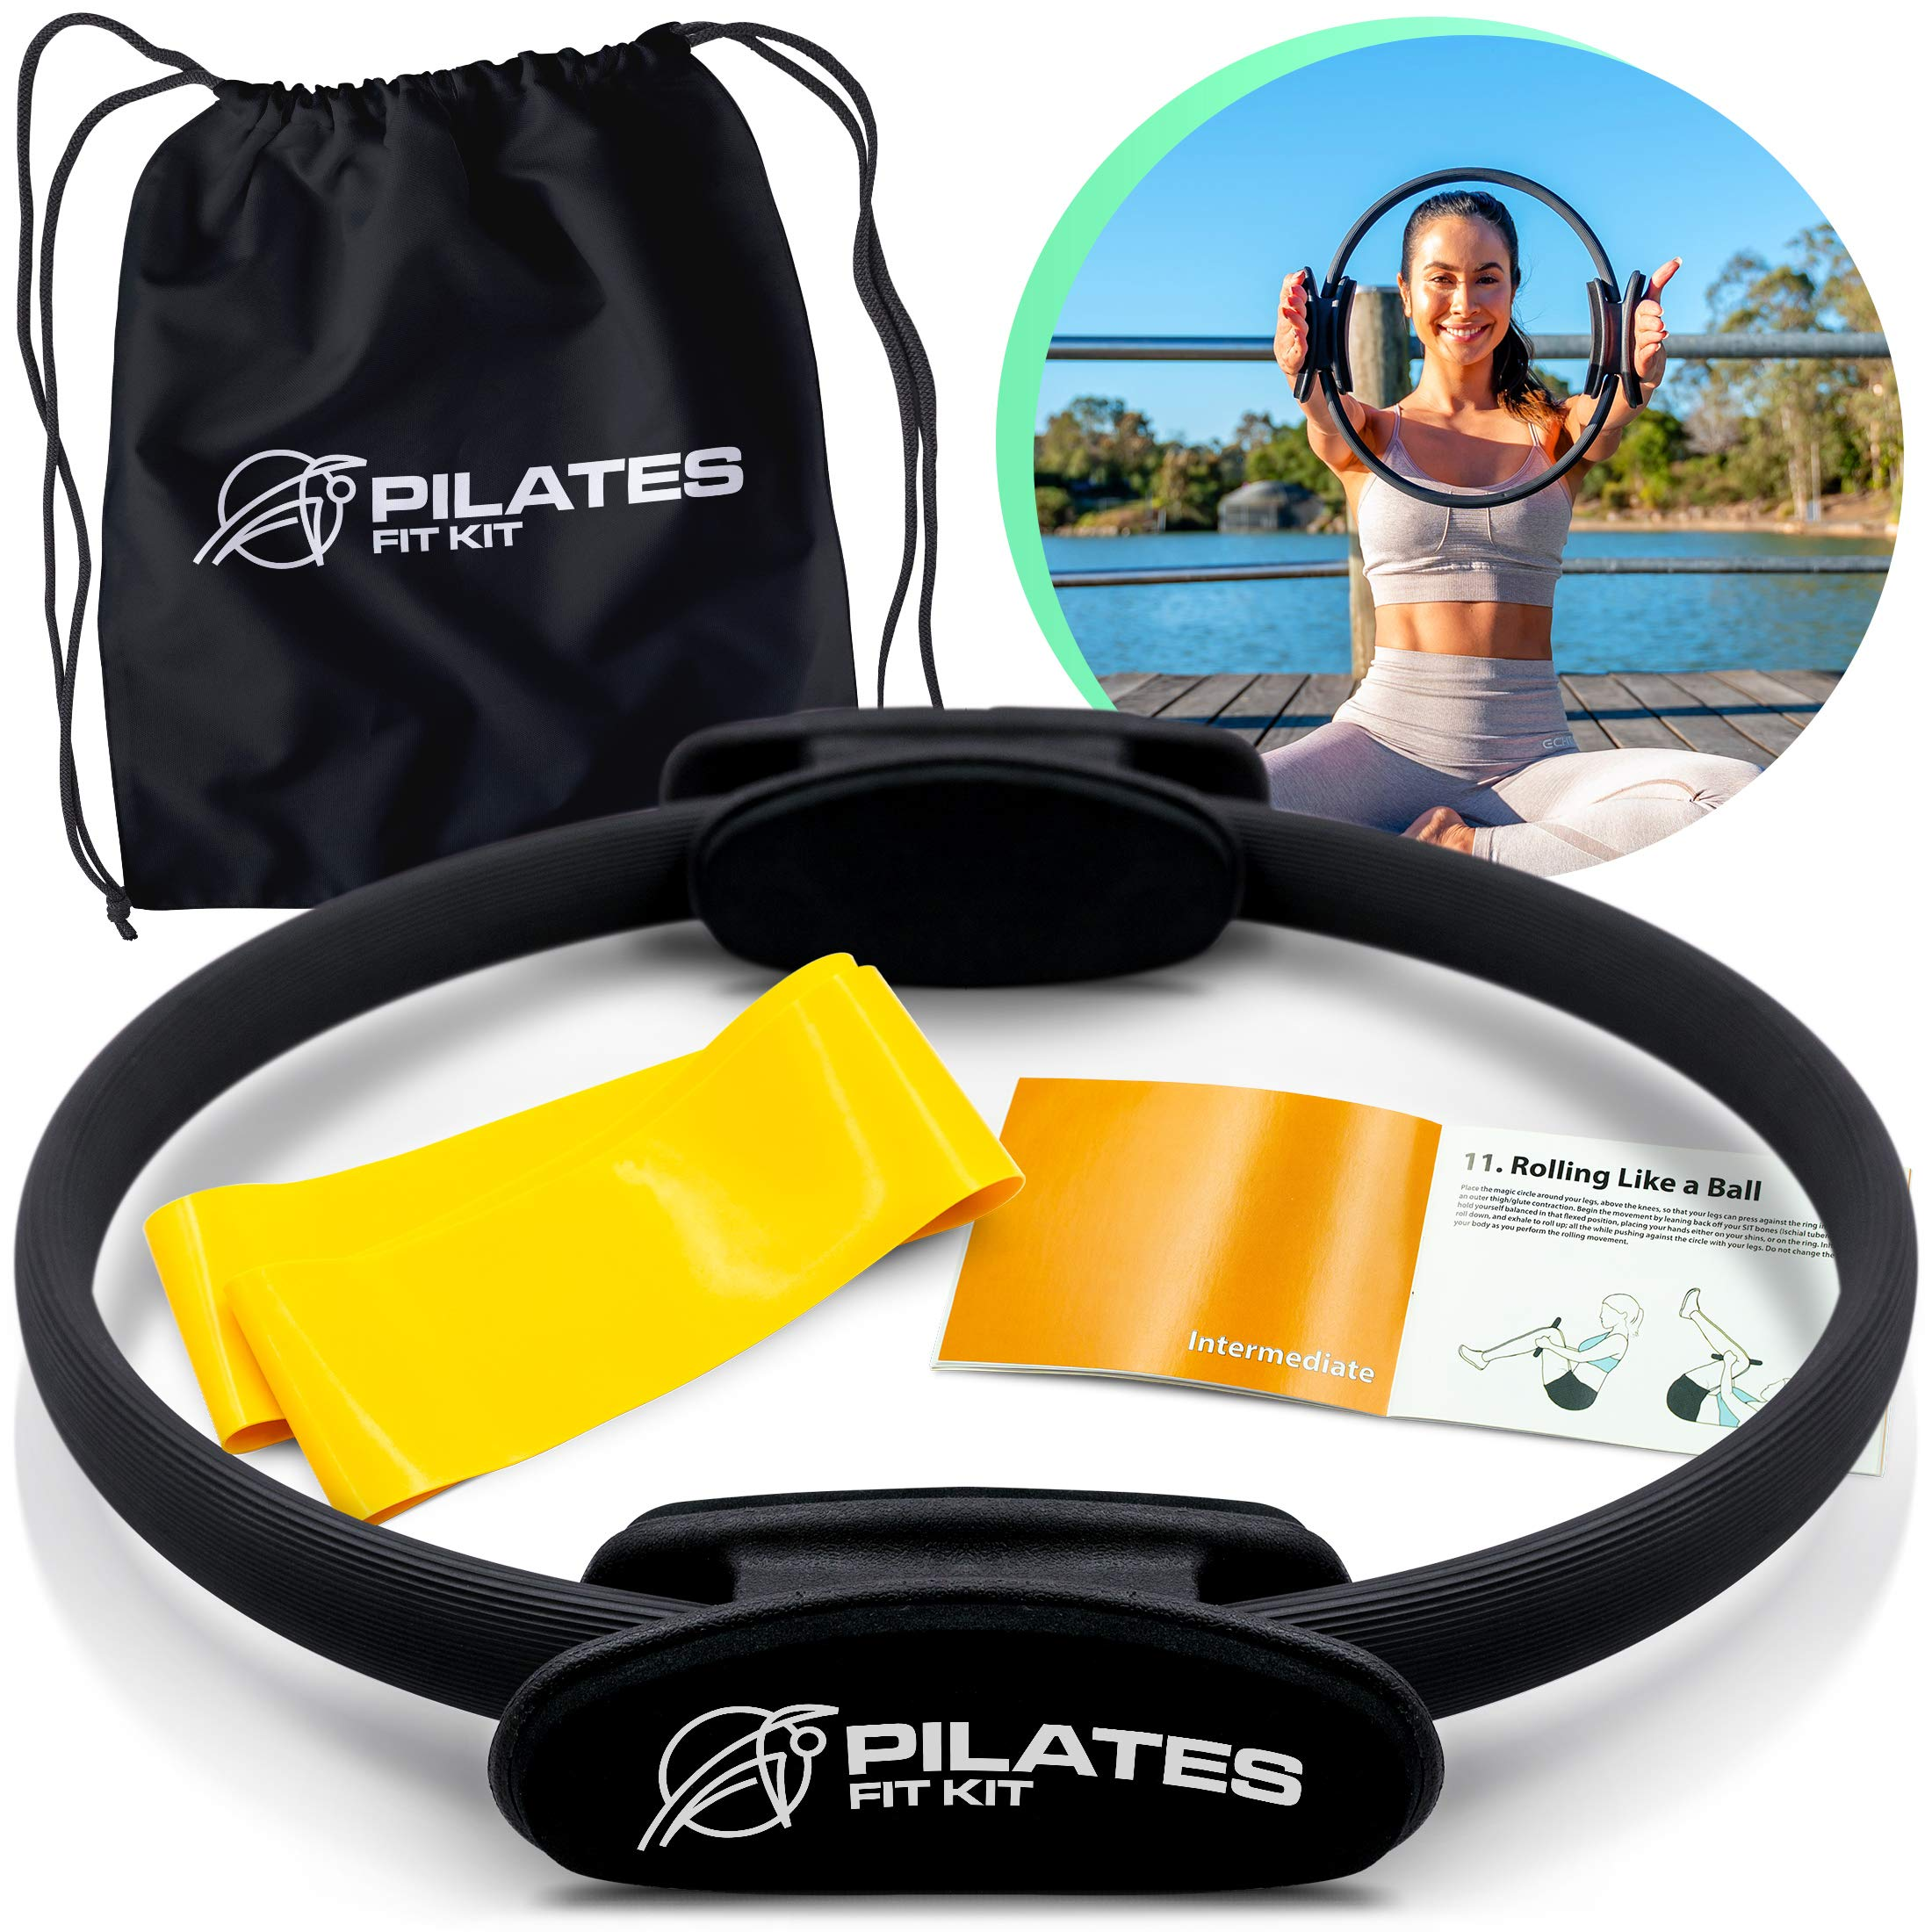 Pilates FITKIT Magic Circle Ring 14 Inch – Total Body Weight Loss Resistance Training Workout, Heavy Duty Foam Dual Grip…